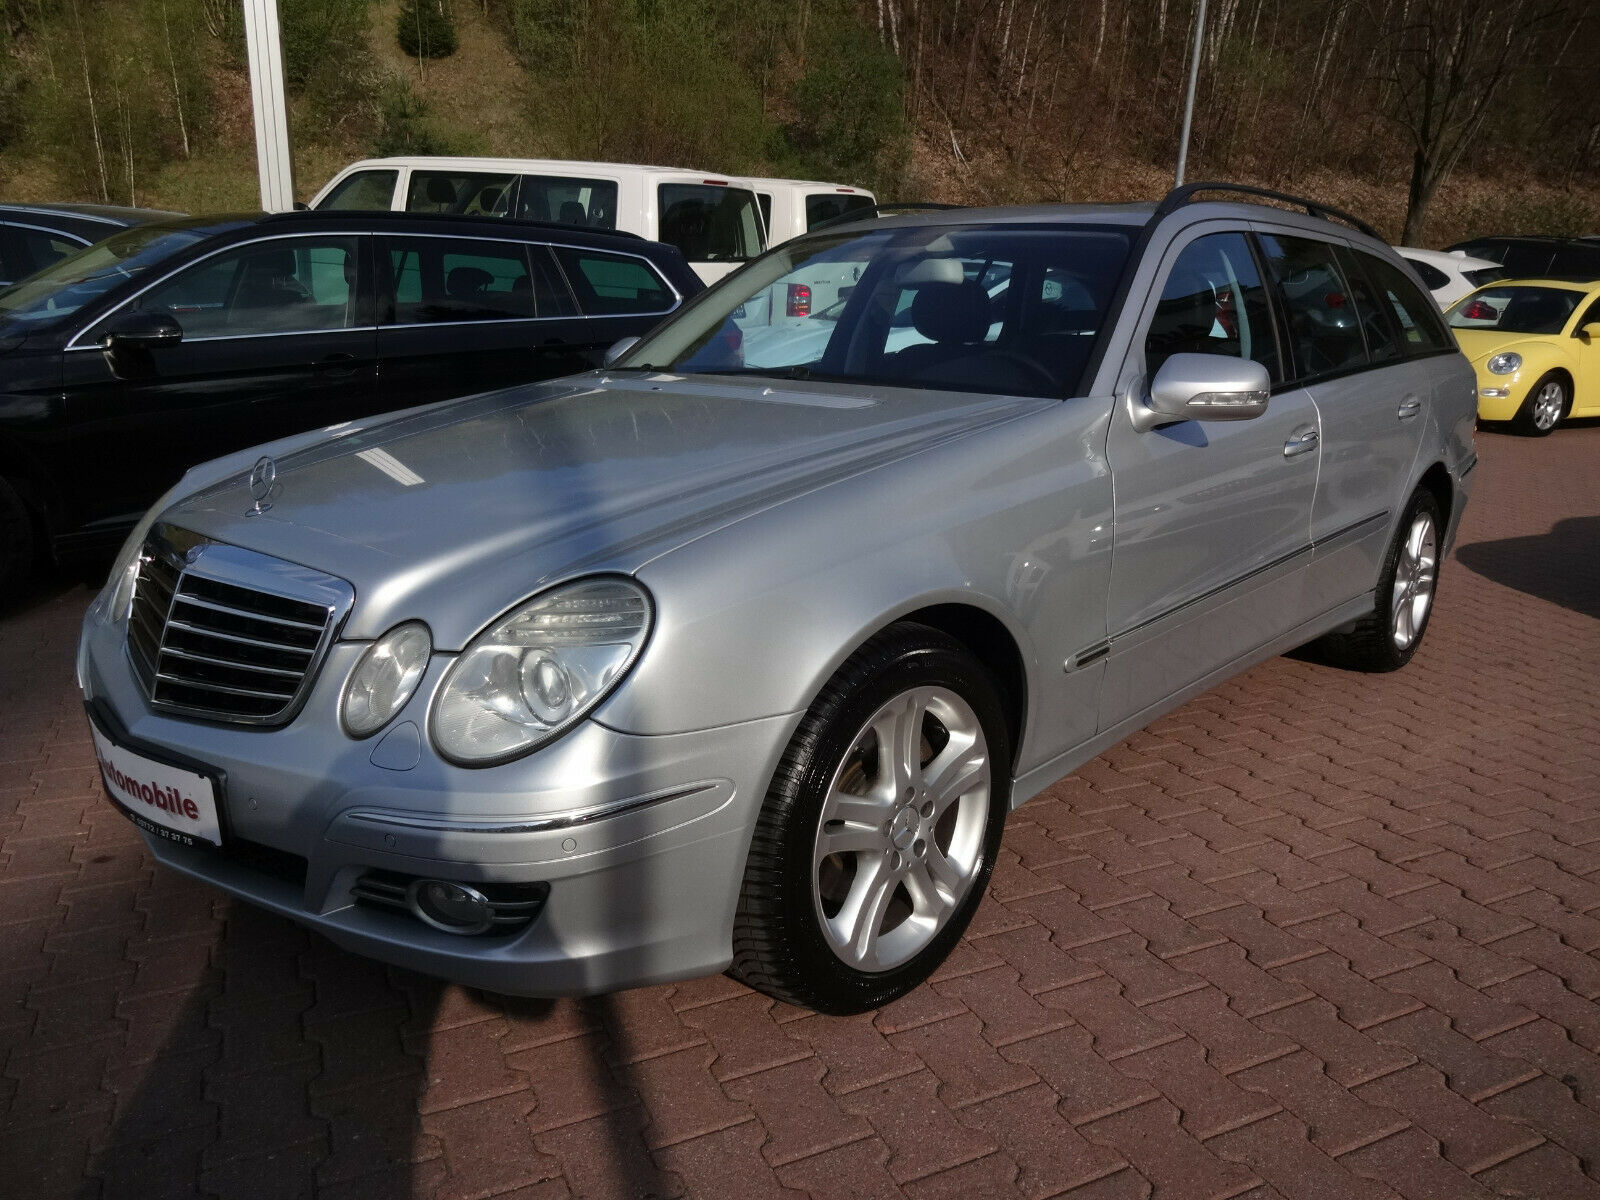 MERCEDES-BENZ E 280 CDI AVANTGARDE 4Matic